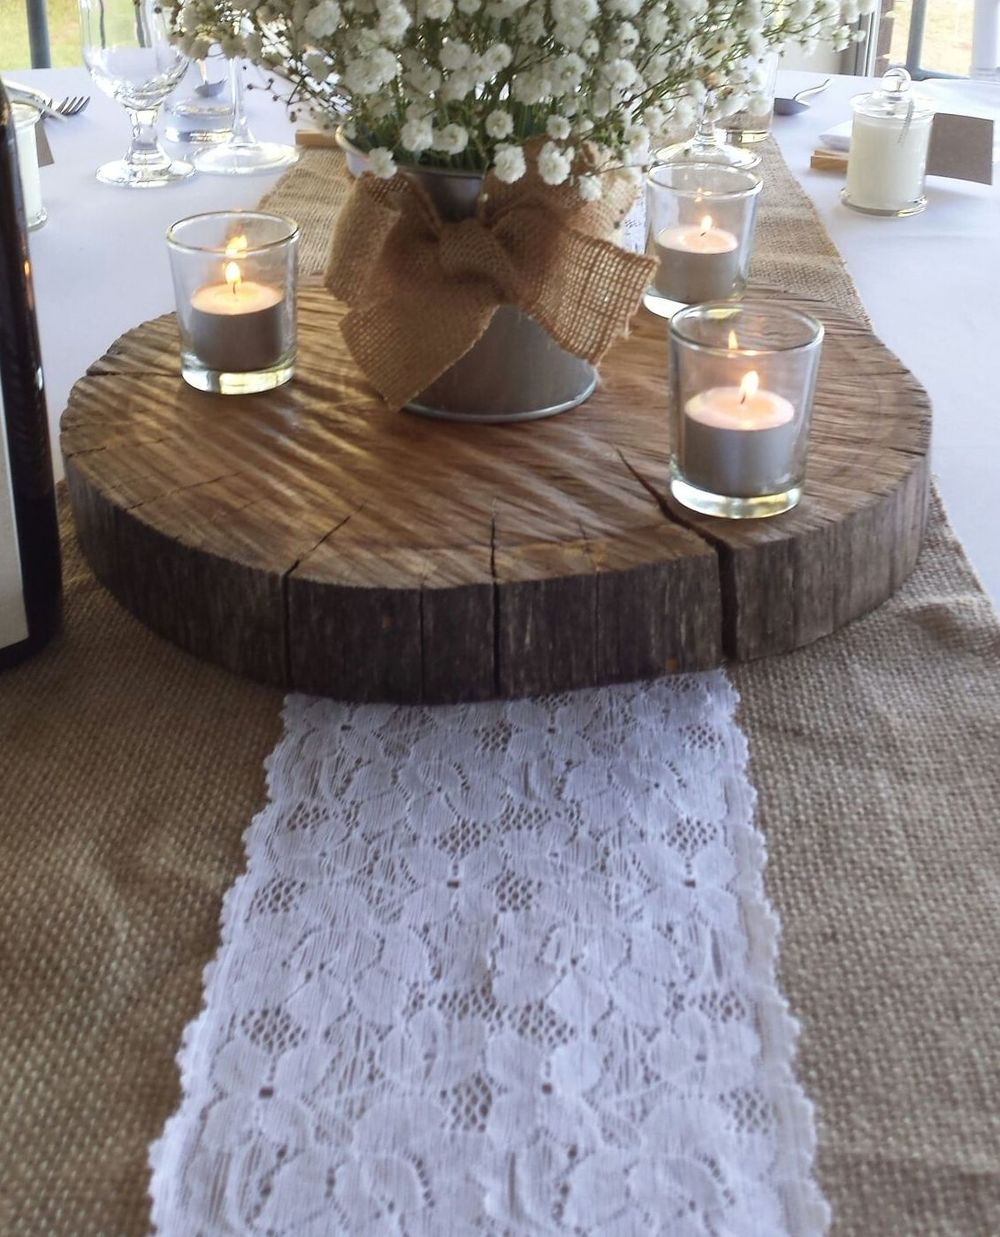 Burlap with Lace Table Runner Hire